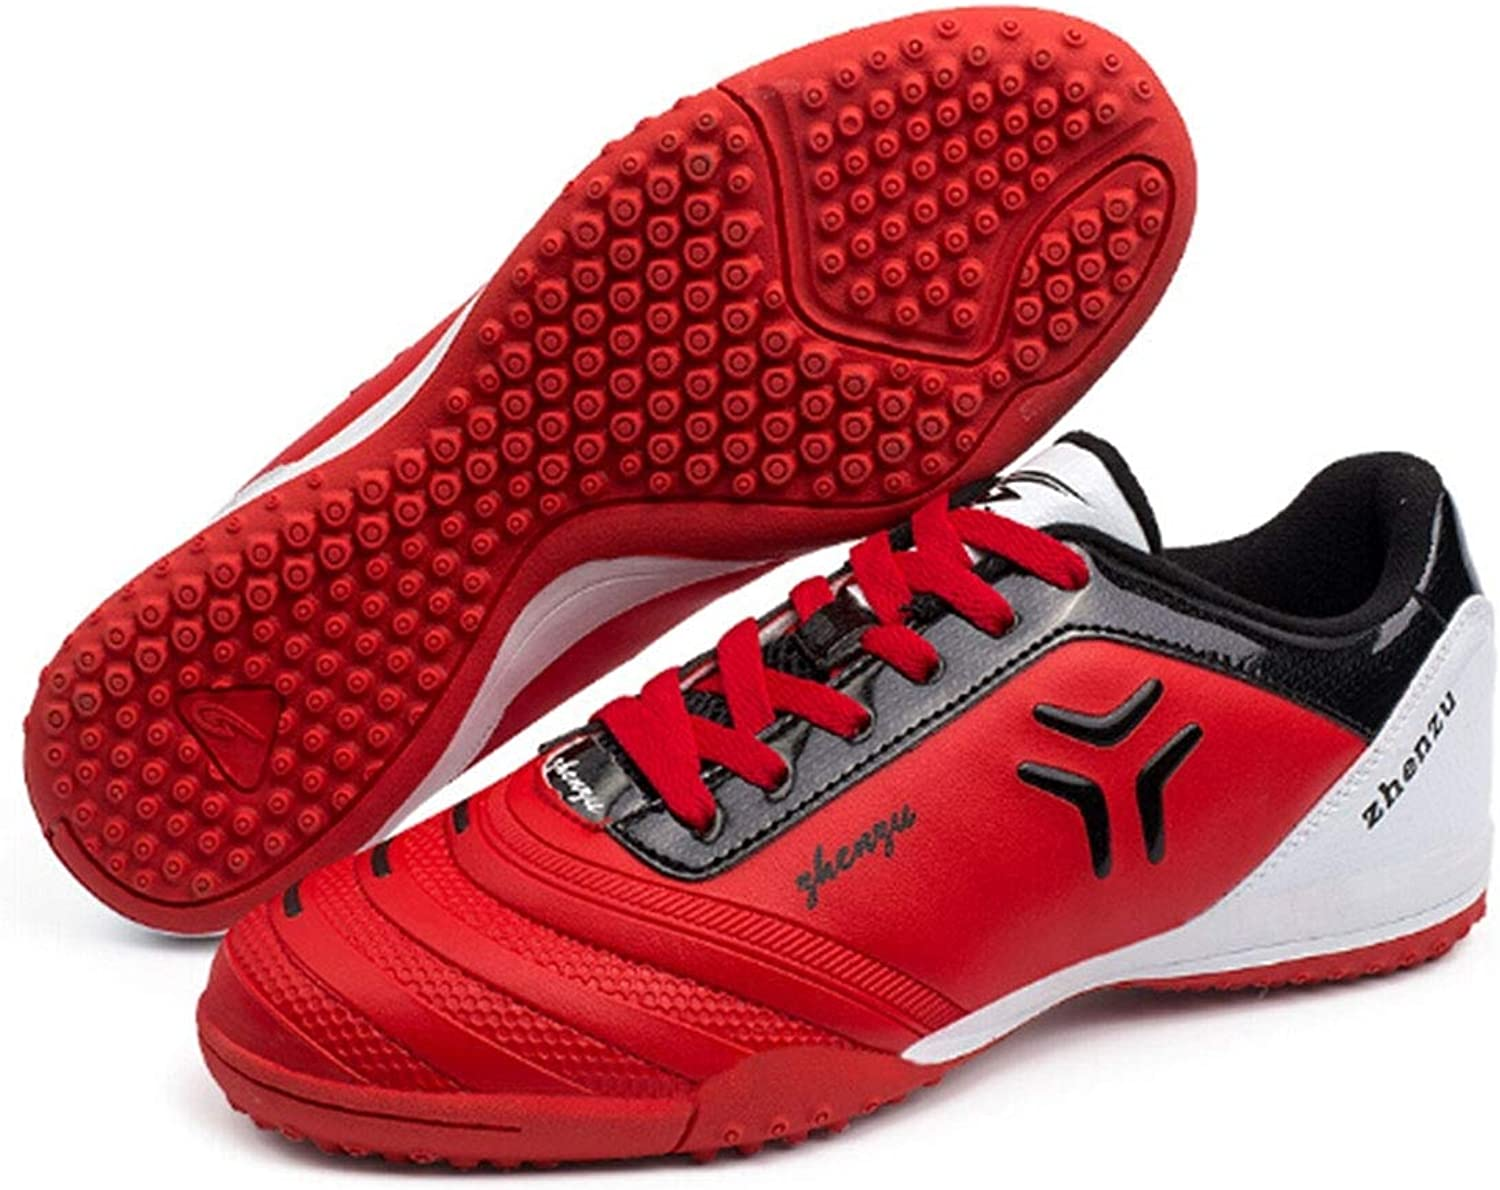 Godlikematealliance Outdoor&Sports shoes Zhenzu Outdoor Sporting Professional Training PU Football shoes, EU Size  30(Red)